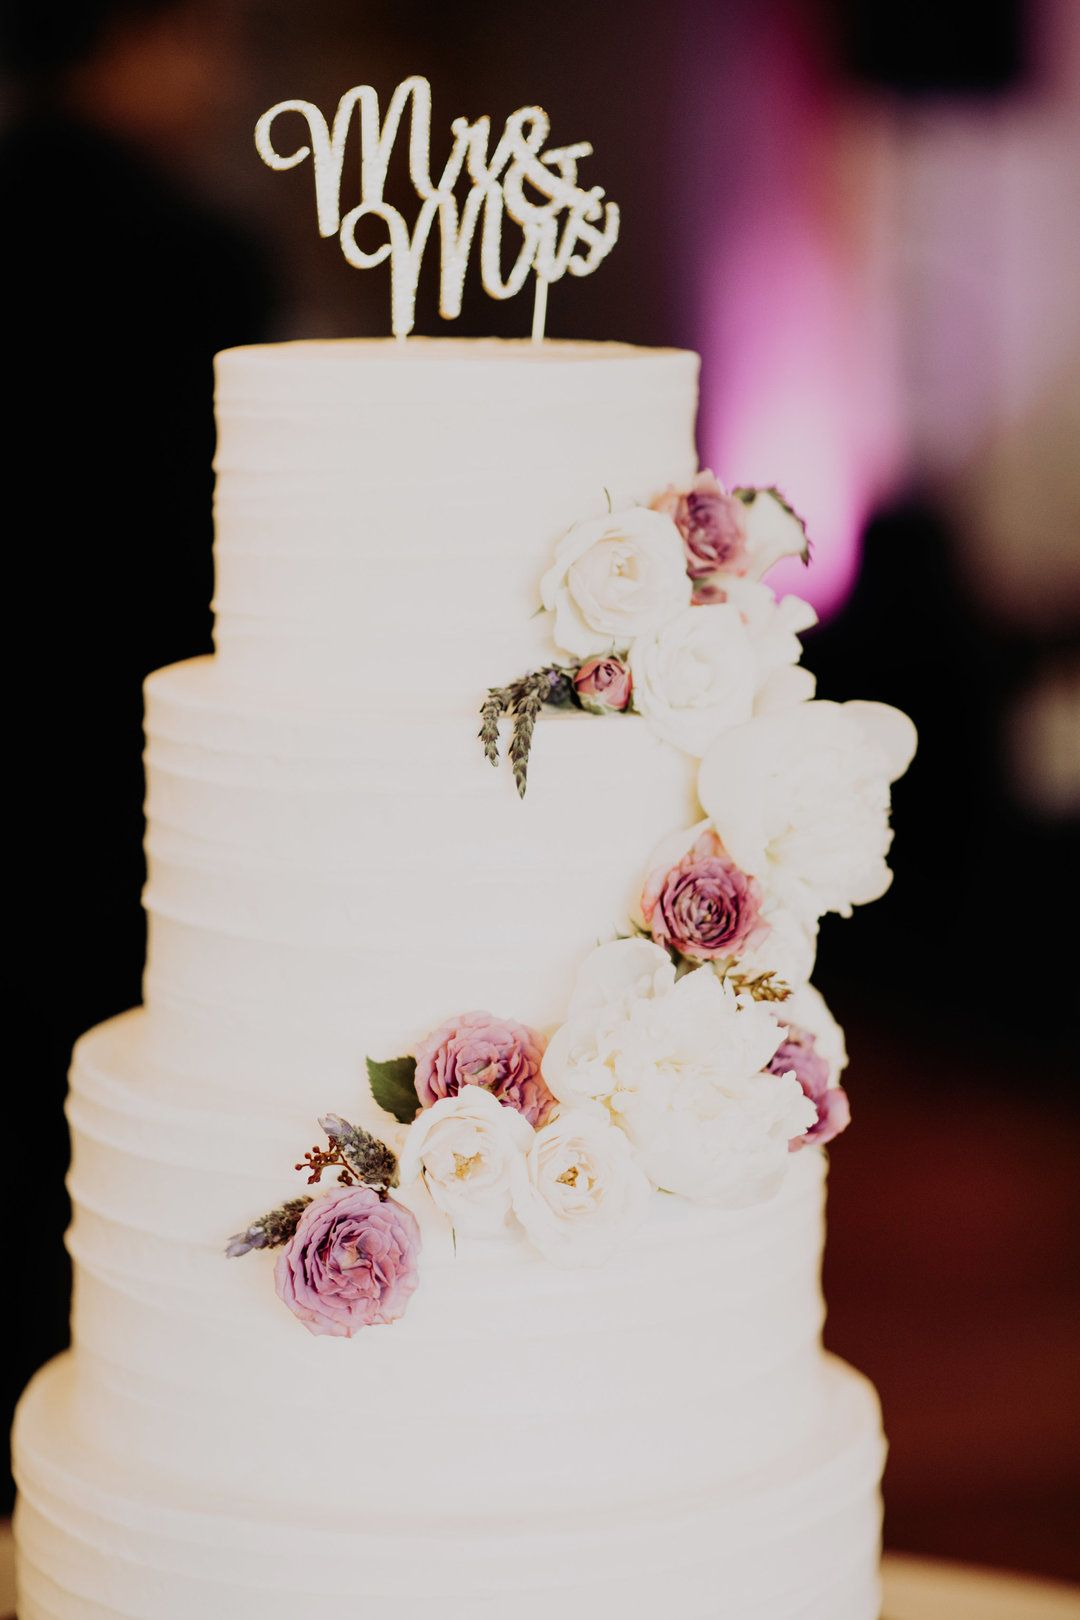 Wedding cake ideas, cascading white and pink flowers, Mr. & Mrs. cake topper, romantic wedding, pin to your own inspiration board // Addison Jones Photography